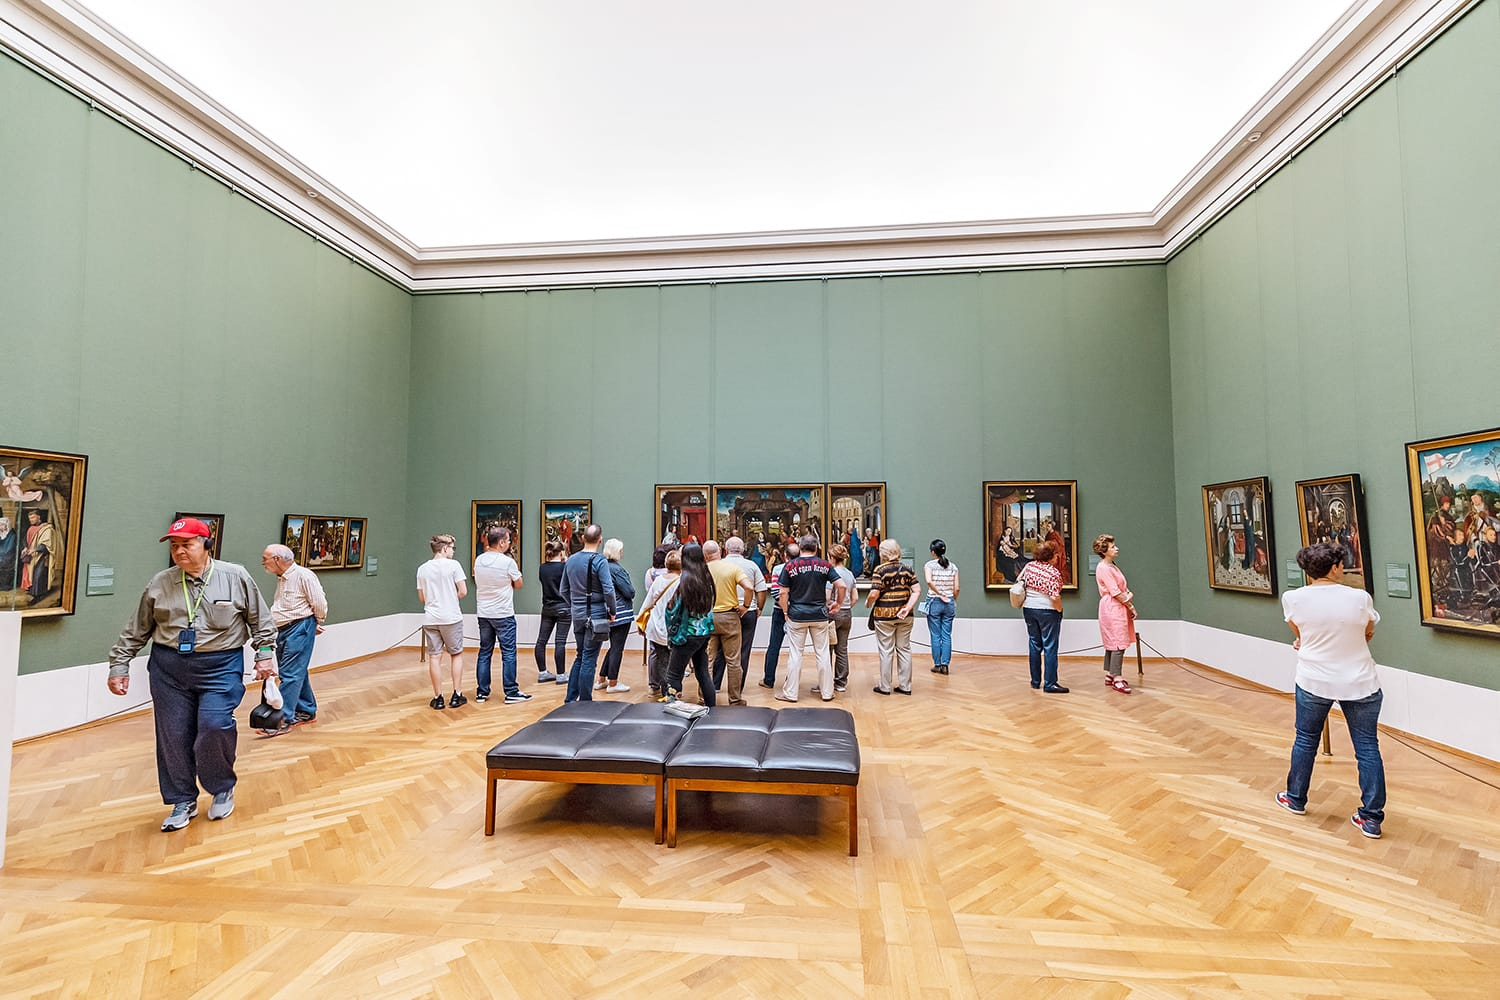 Visitors to the old Pinakothek in Munich admire the paintings of the great masters of antiquity